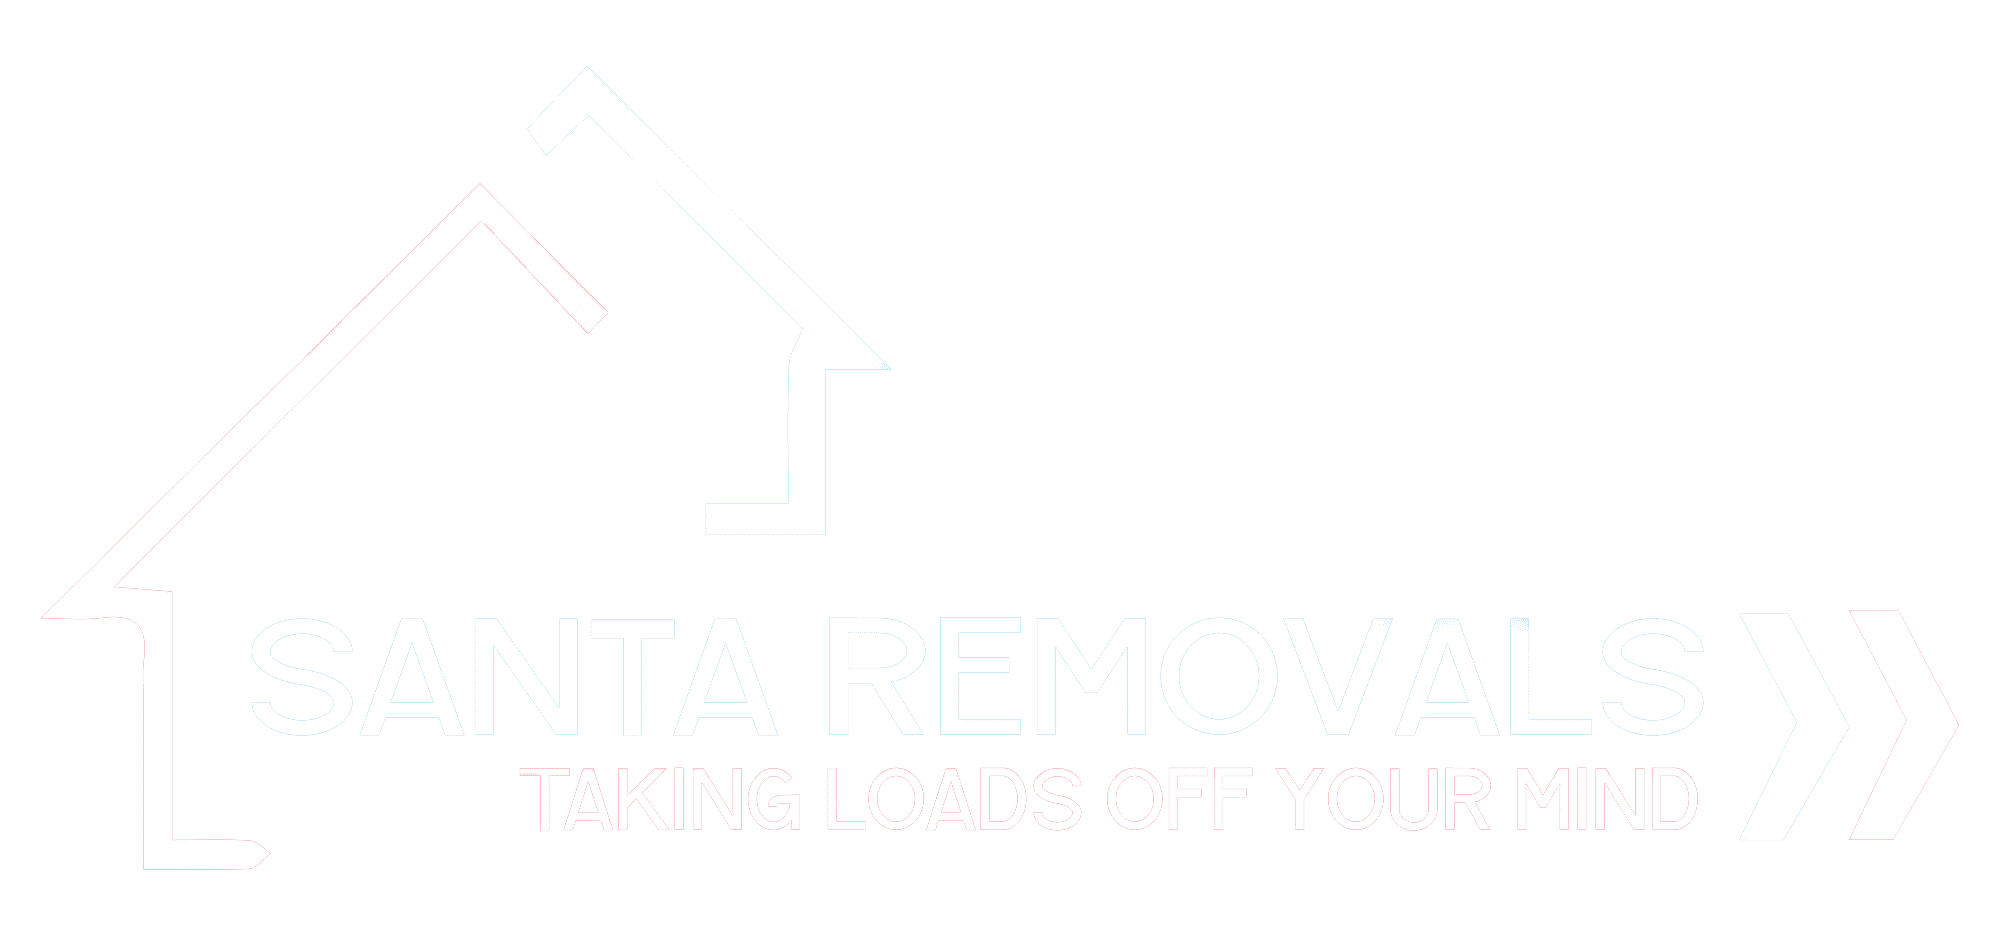 House Removal Services Birmingham, Rugby and Conventry